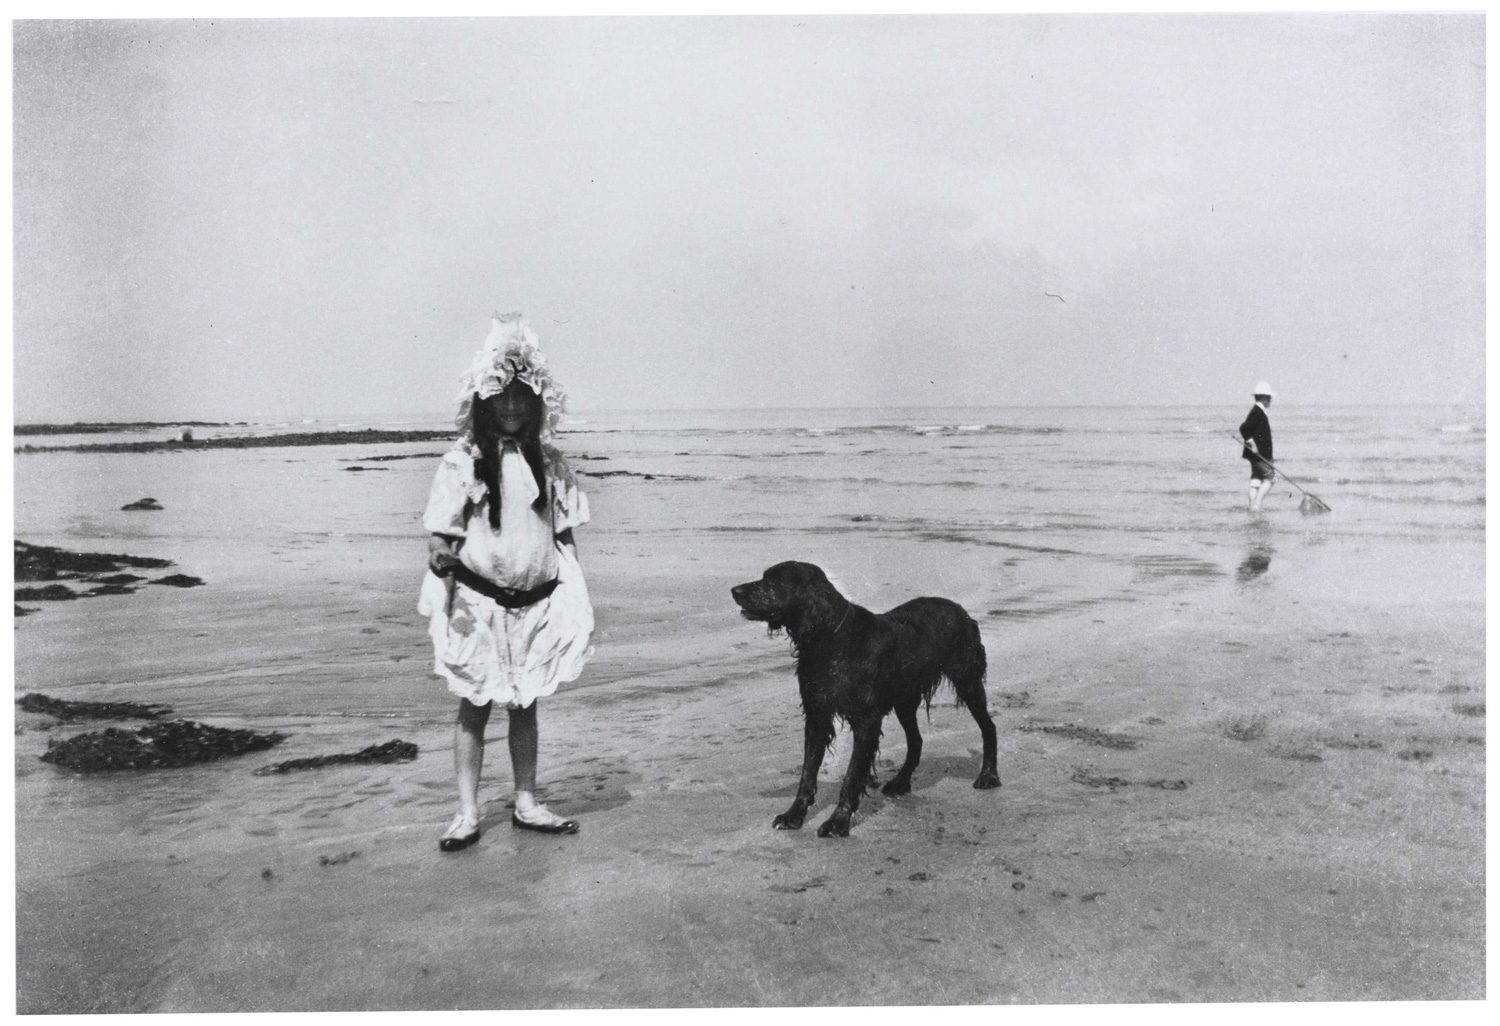 Simone Roussel on the Beach at Villerville